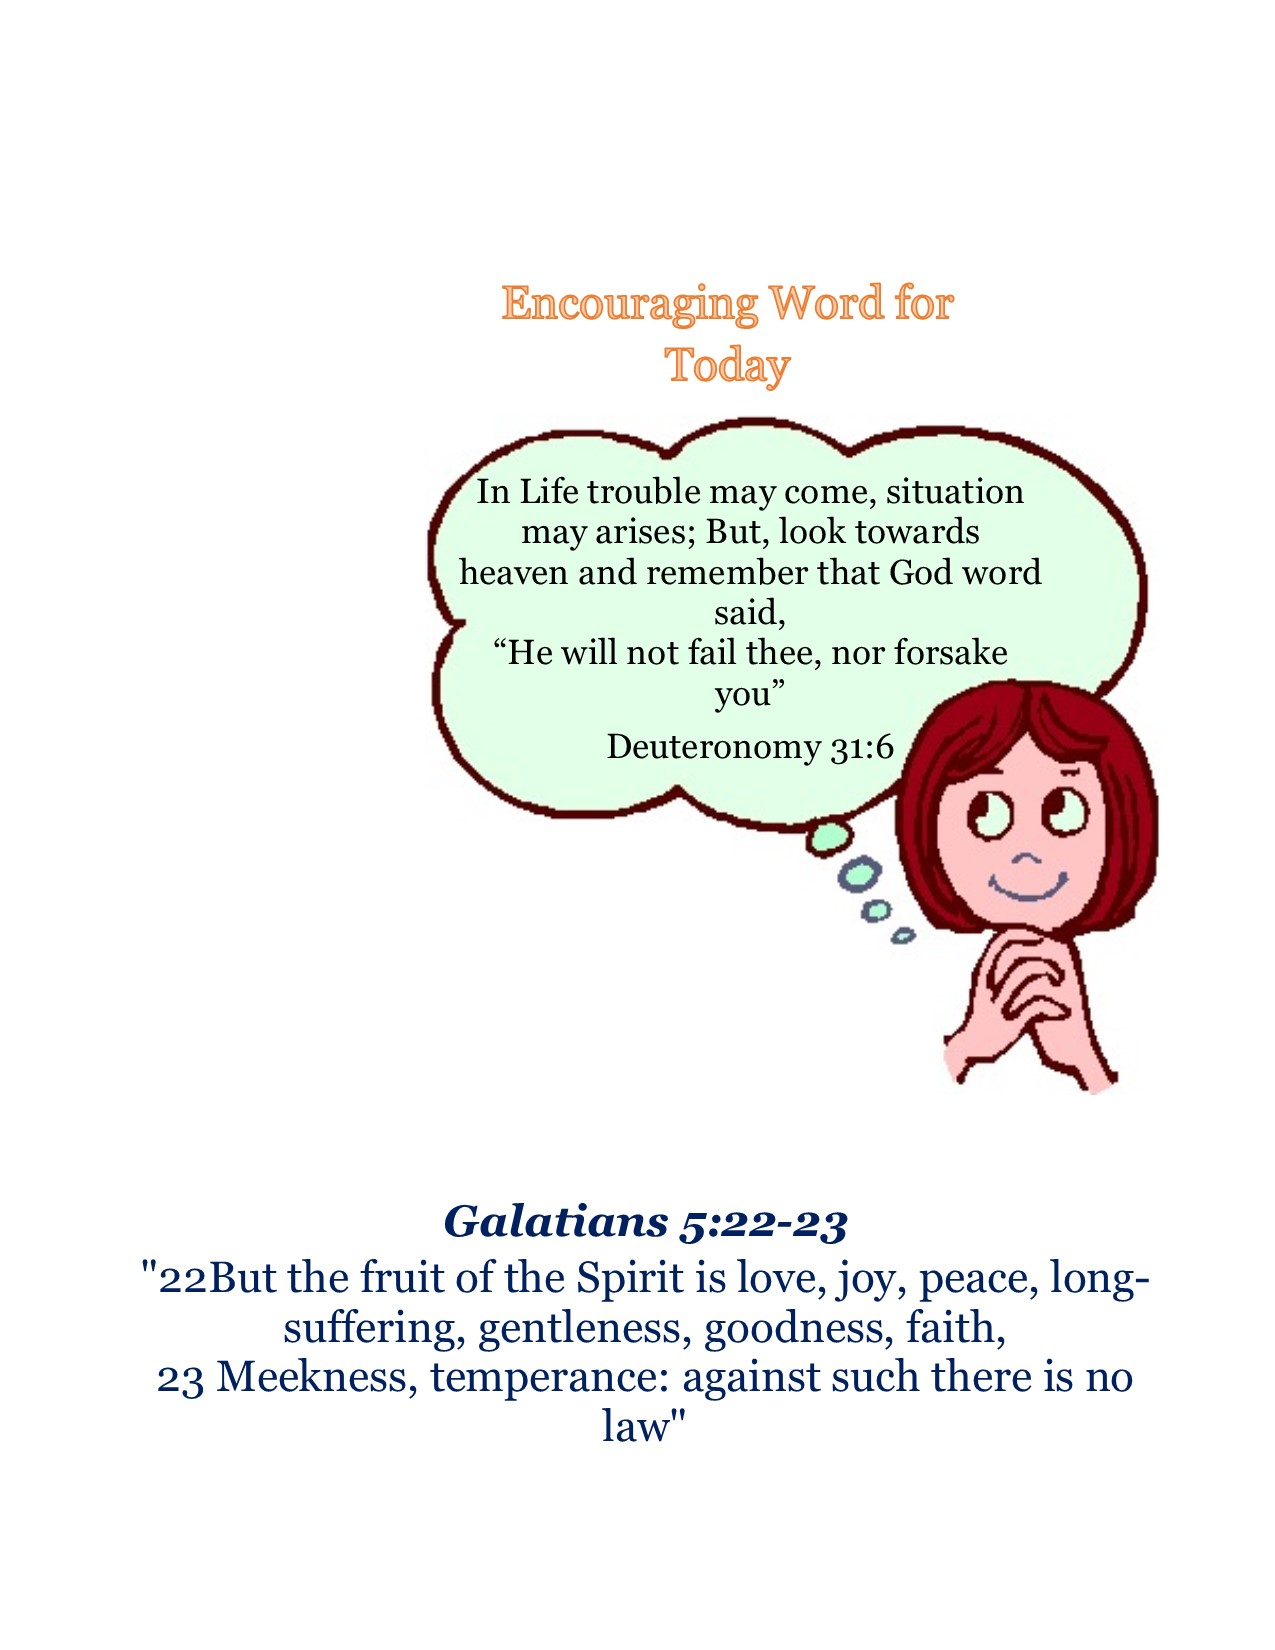 Encouragement-word-for-today-1.jpg